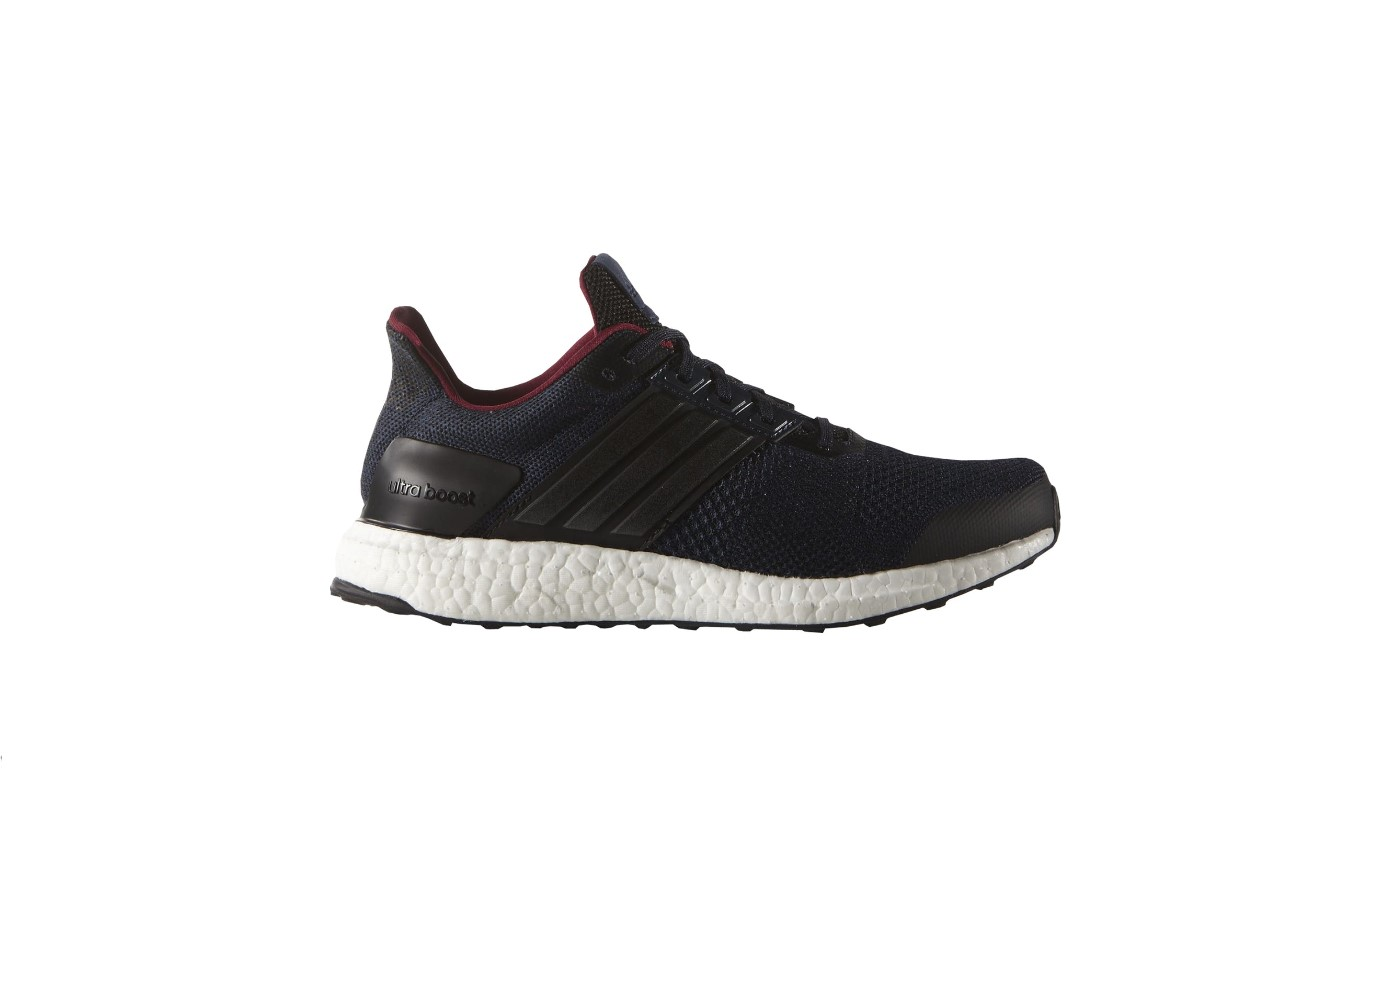 458803c122e Adidas UltraBoost ST Mens Running Shoe - Alton Sports